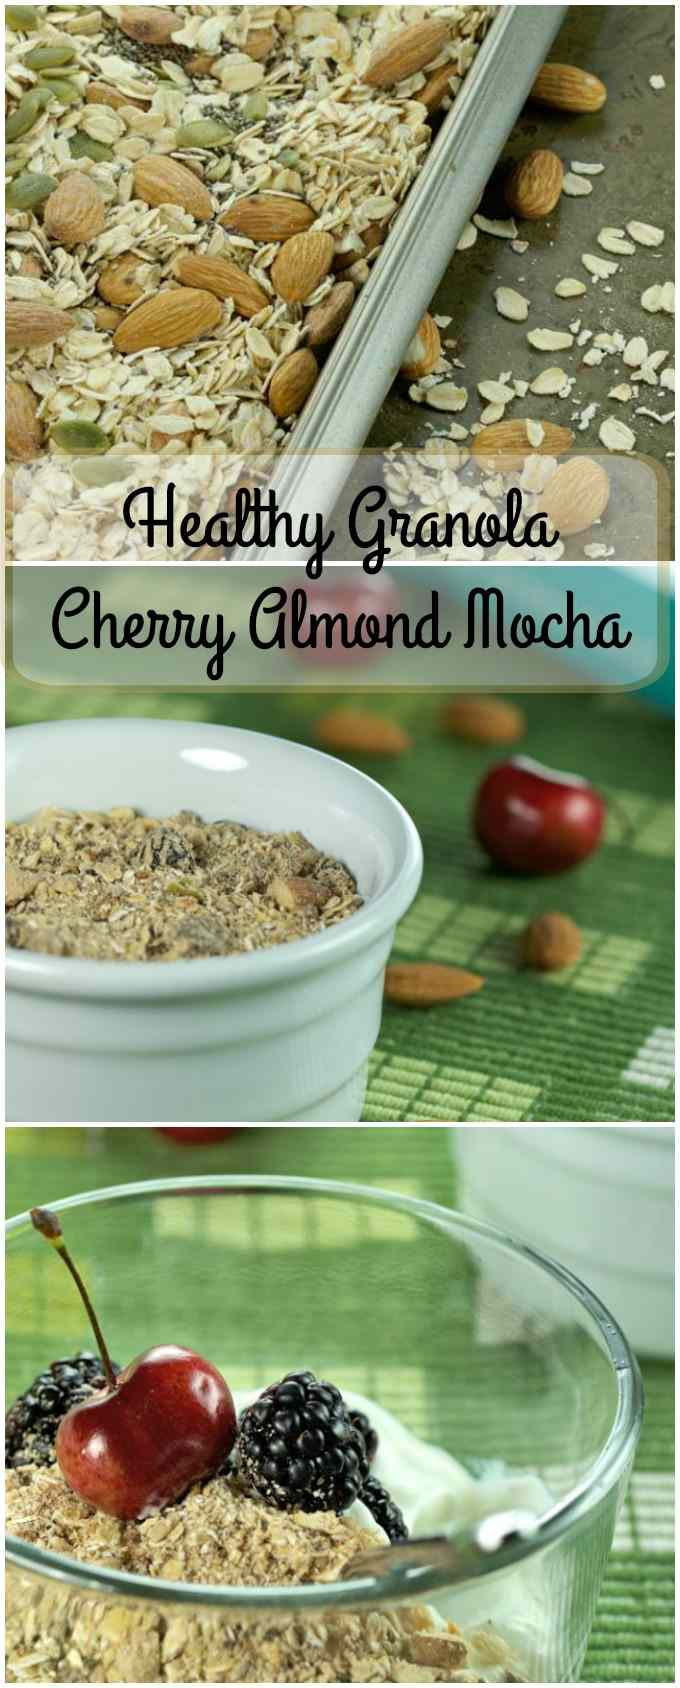 Healthy Granola Cherry Almond Mocha long pin image.